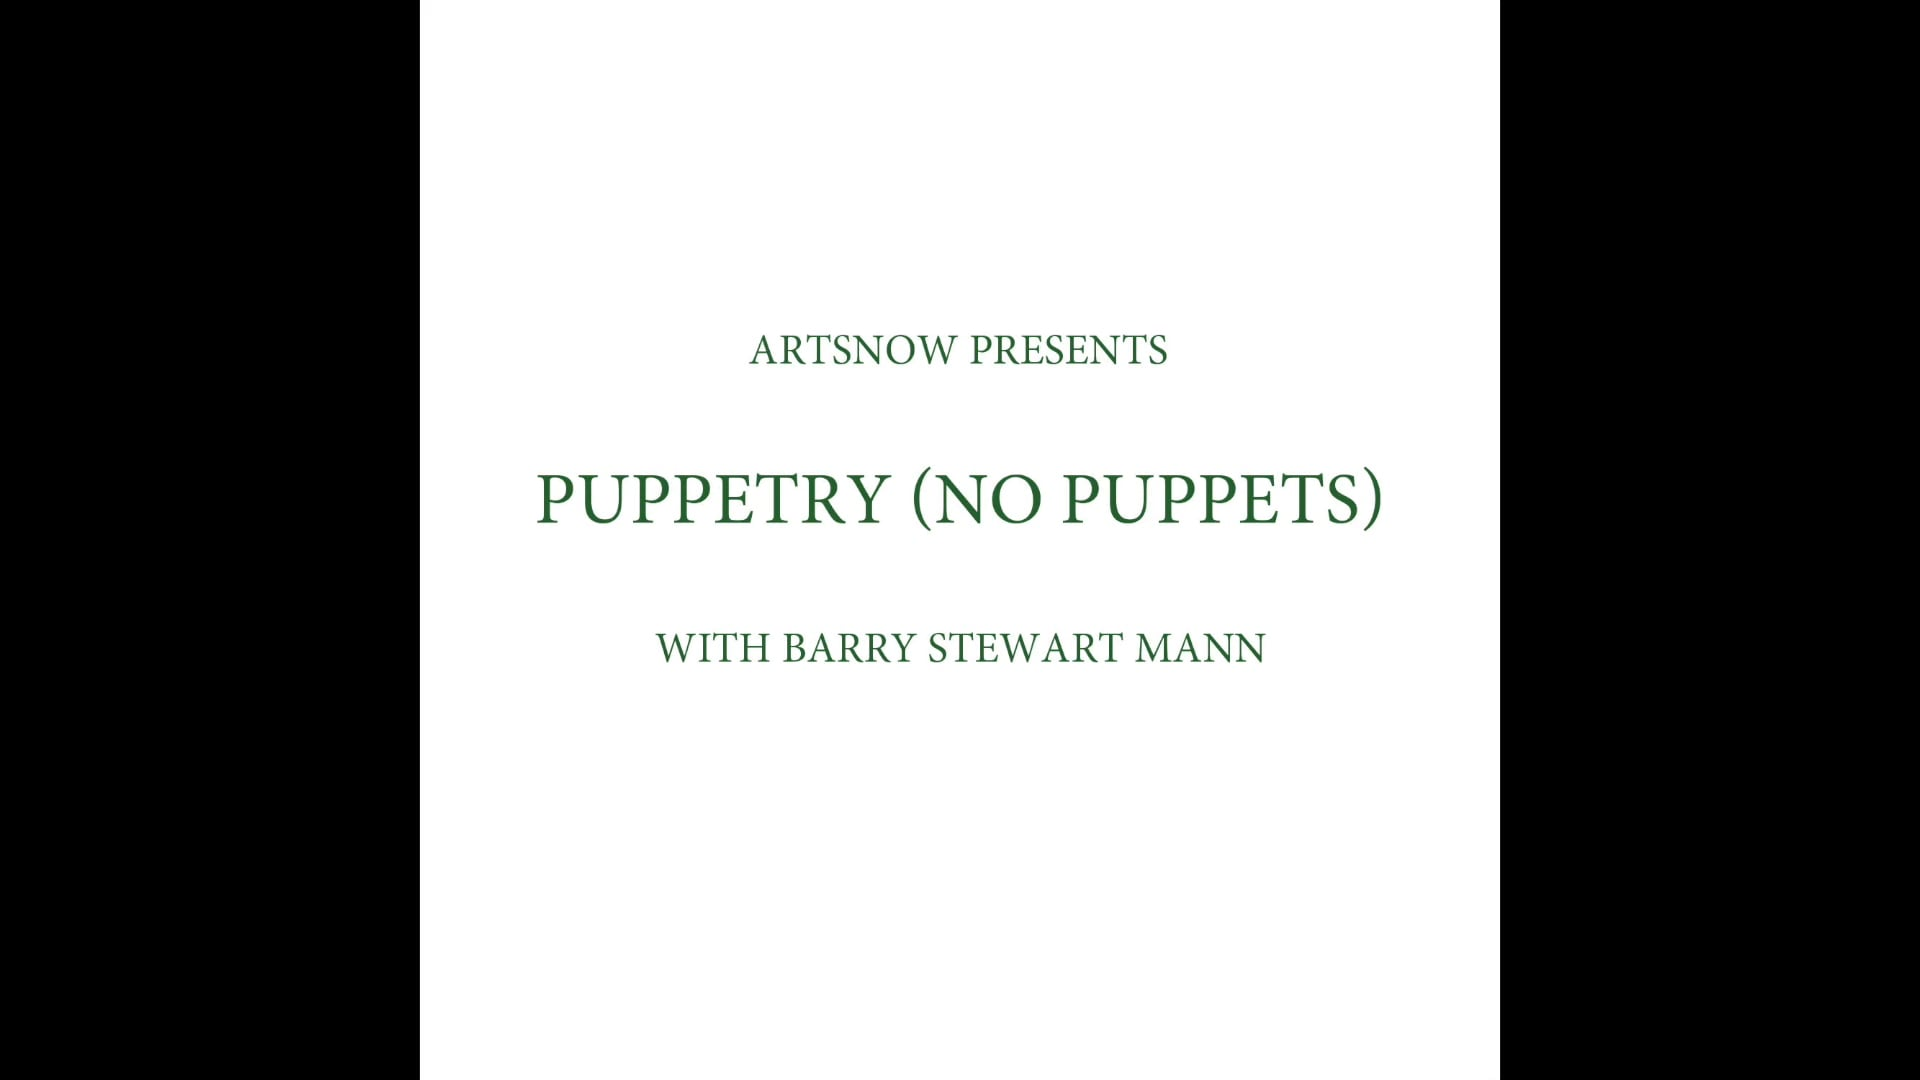 New Digital Ideas: Puppetry Without Puppets